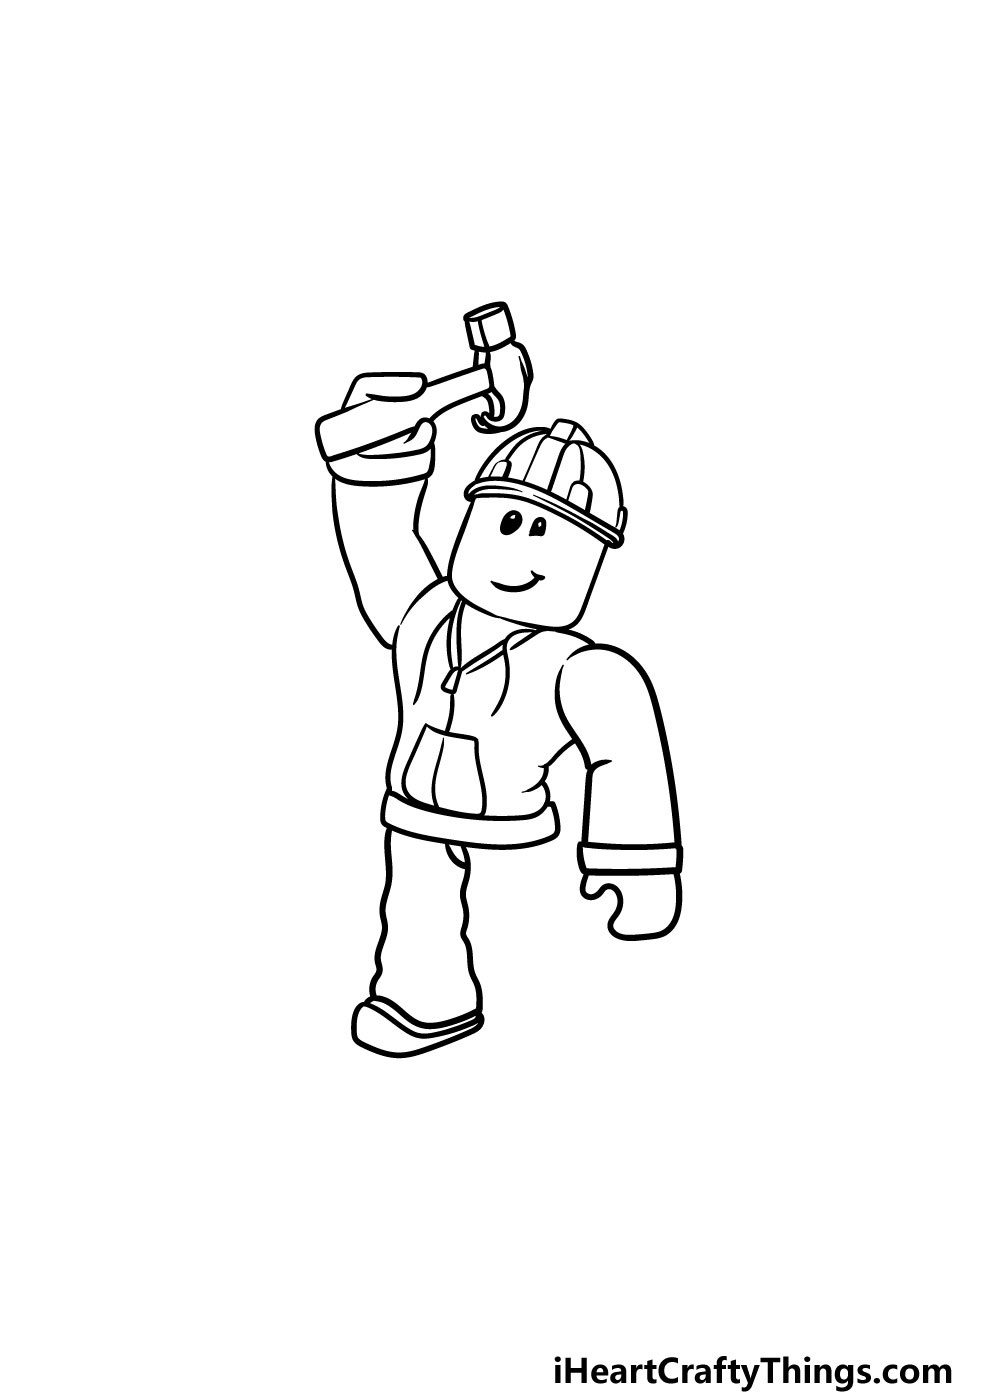 drawing roblox step 4